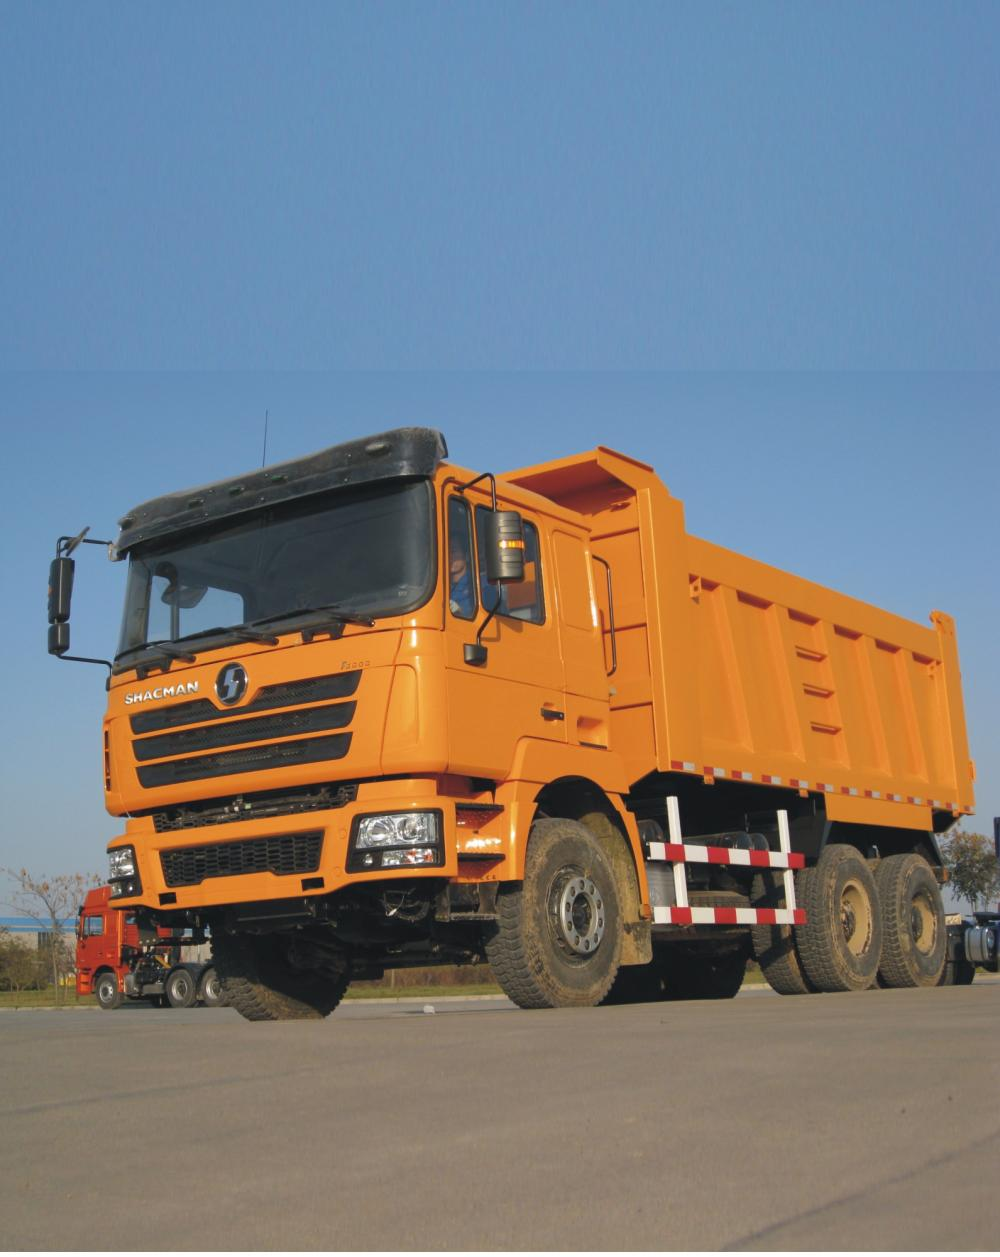 SHACMAN 6X4 DUMP TRUCK 385 HP WITH COMMINS ENGINE